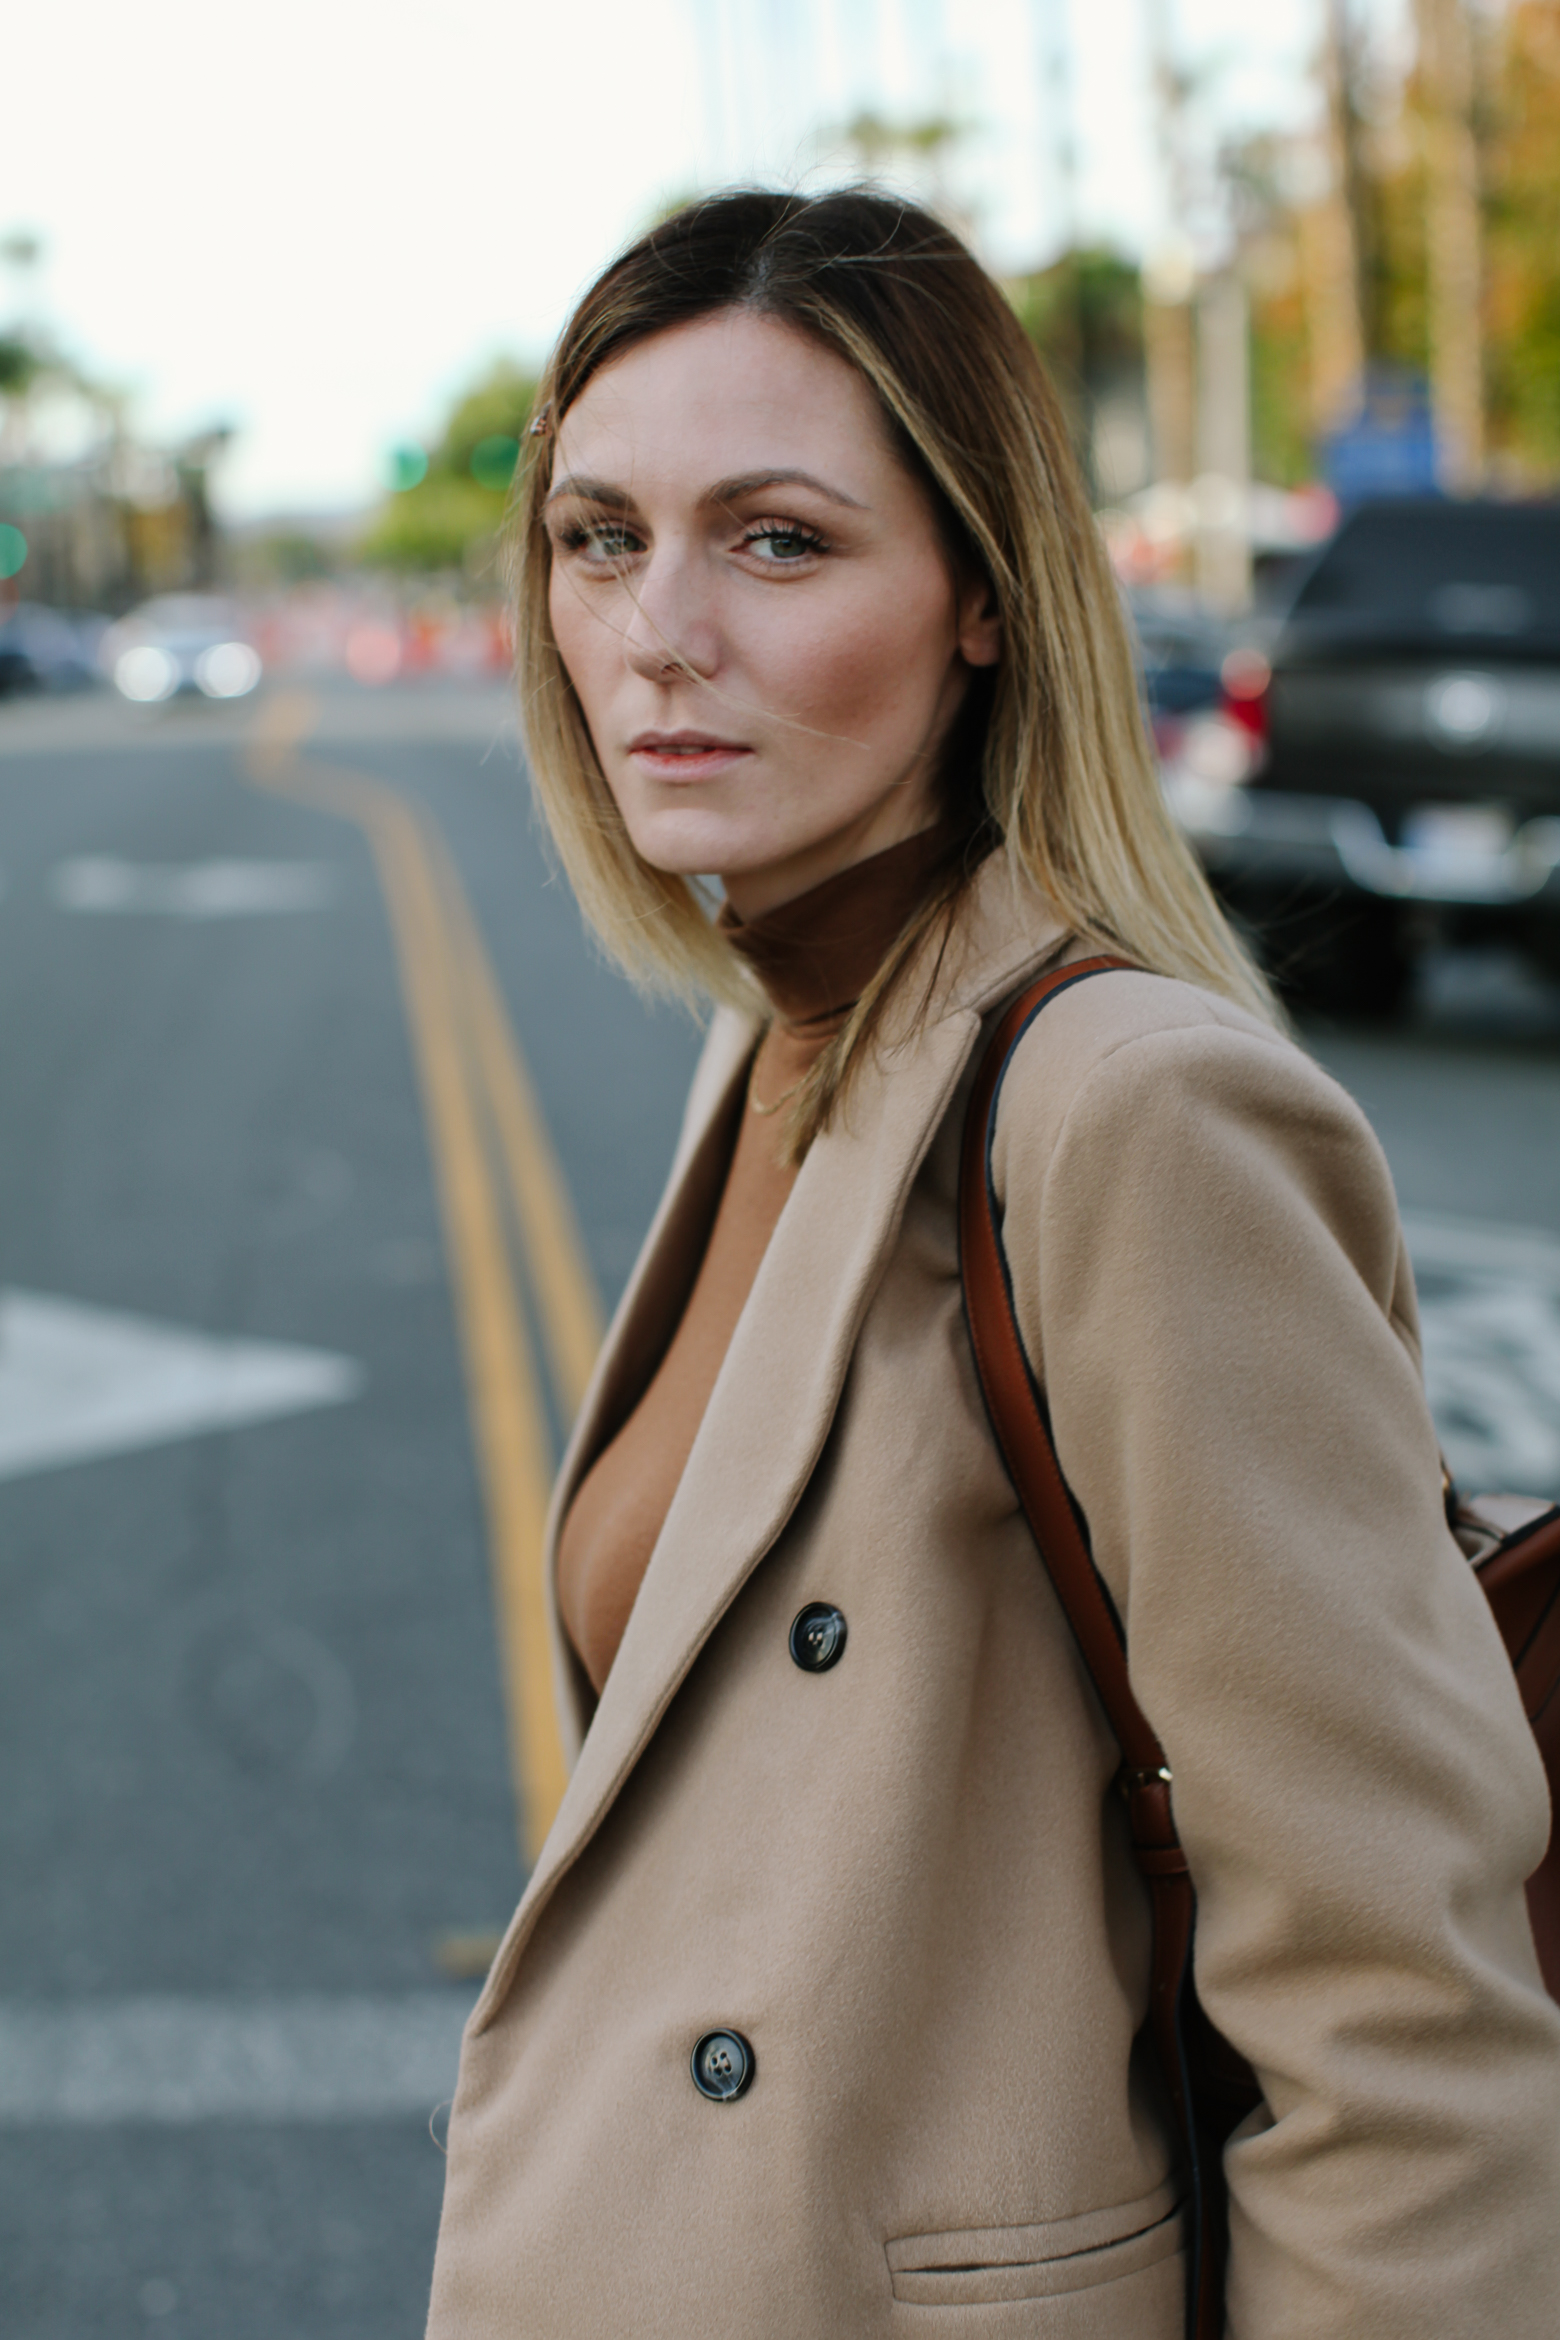 Affordable Camel Coat Picks Under $100 | Affordable Camel Coats by popular Los Angeles fashion blog, Tea Cups and Tulips: image of a woman wearing a SheIn Camel Double Breasted Coat With Welt Pocket, brown Target turtleneck, Diesel jeans, and Mango Zipped detail ankle boots.